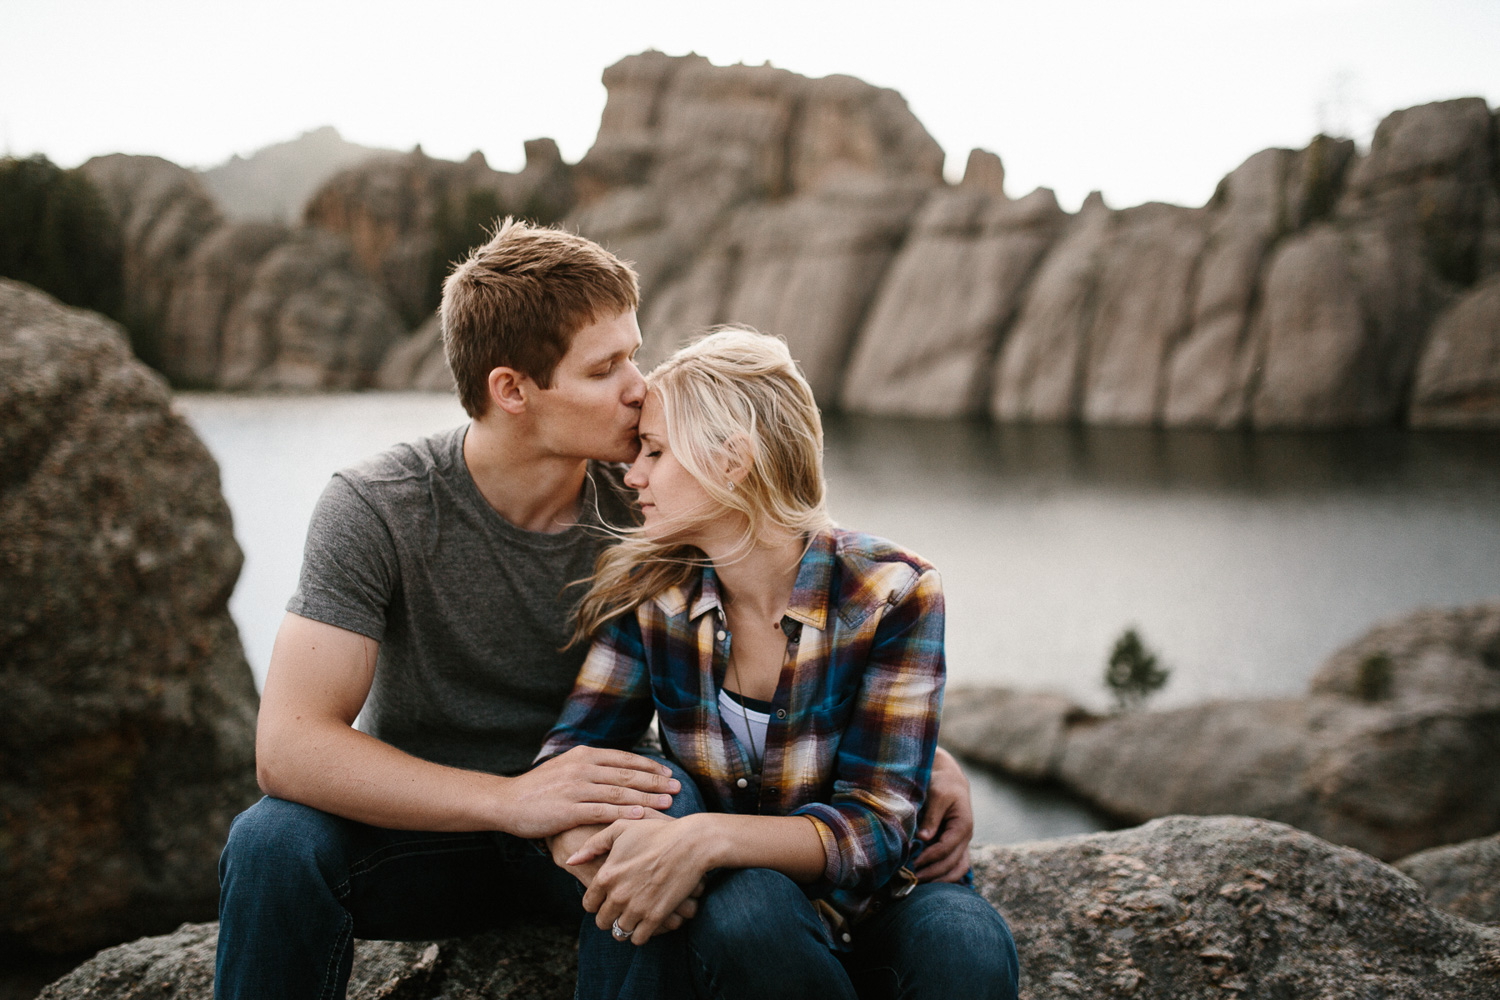 SiouxFalls_BlackHills_Adventure_Engagement_Wedding_Photographer_58.jpg